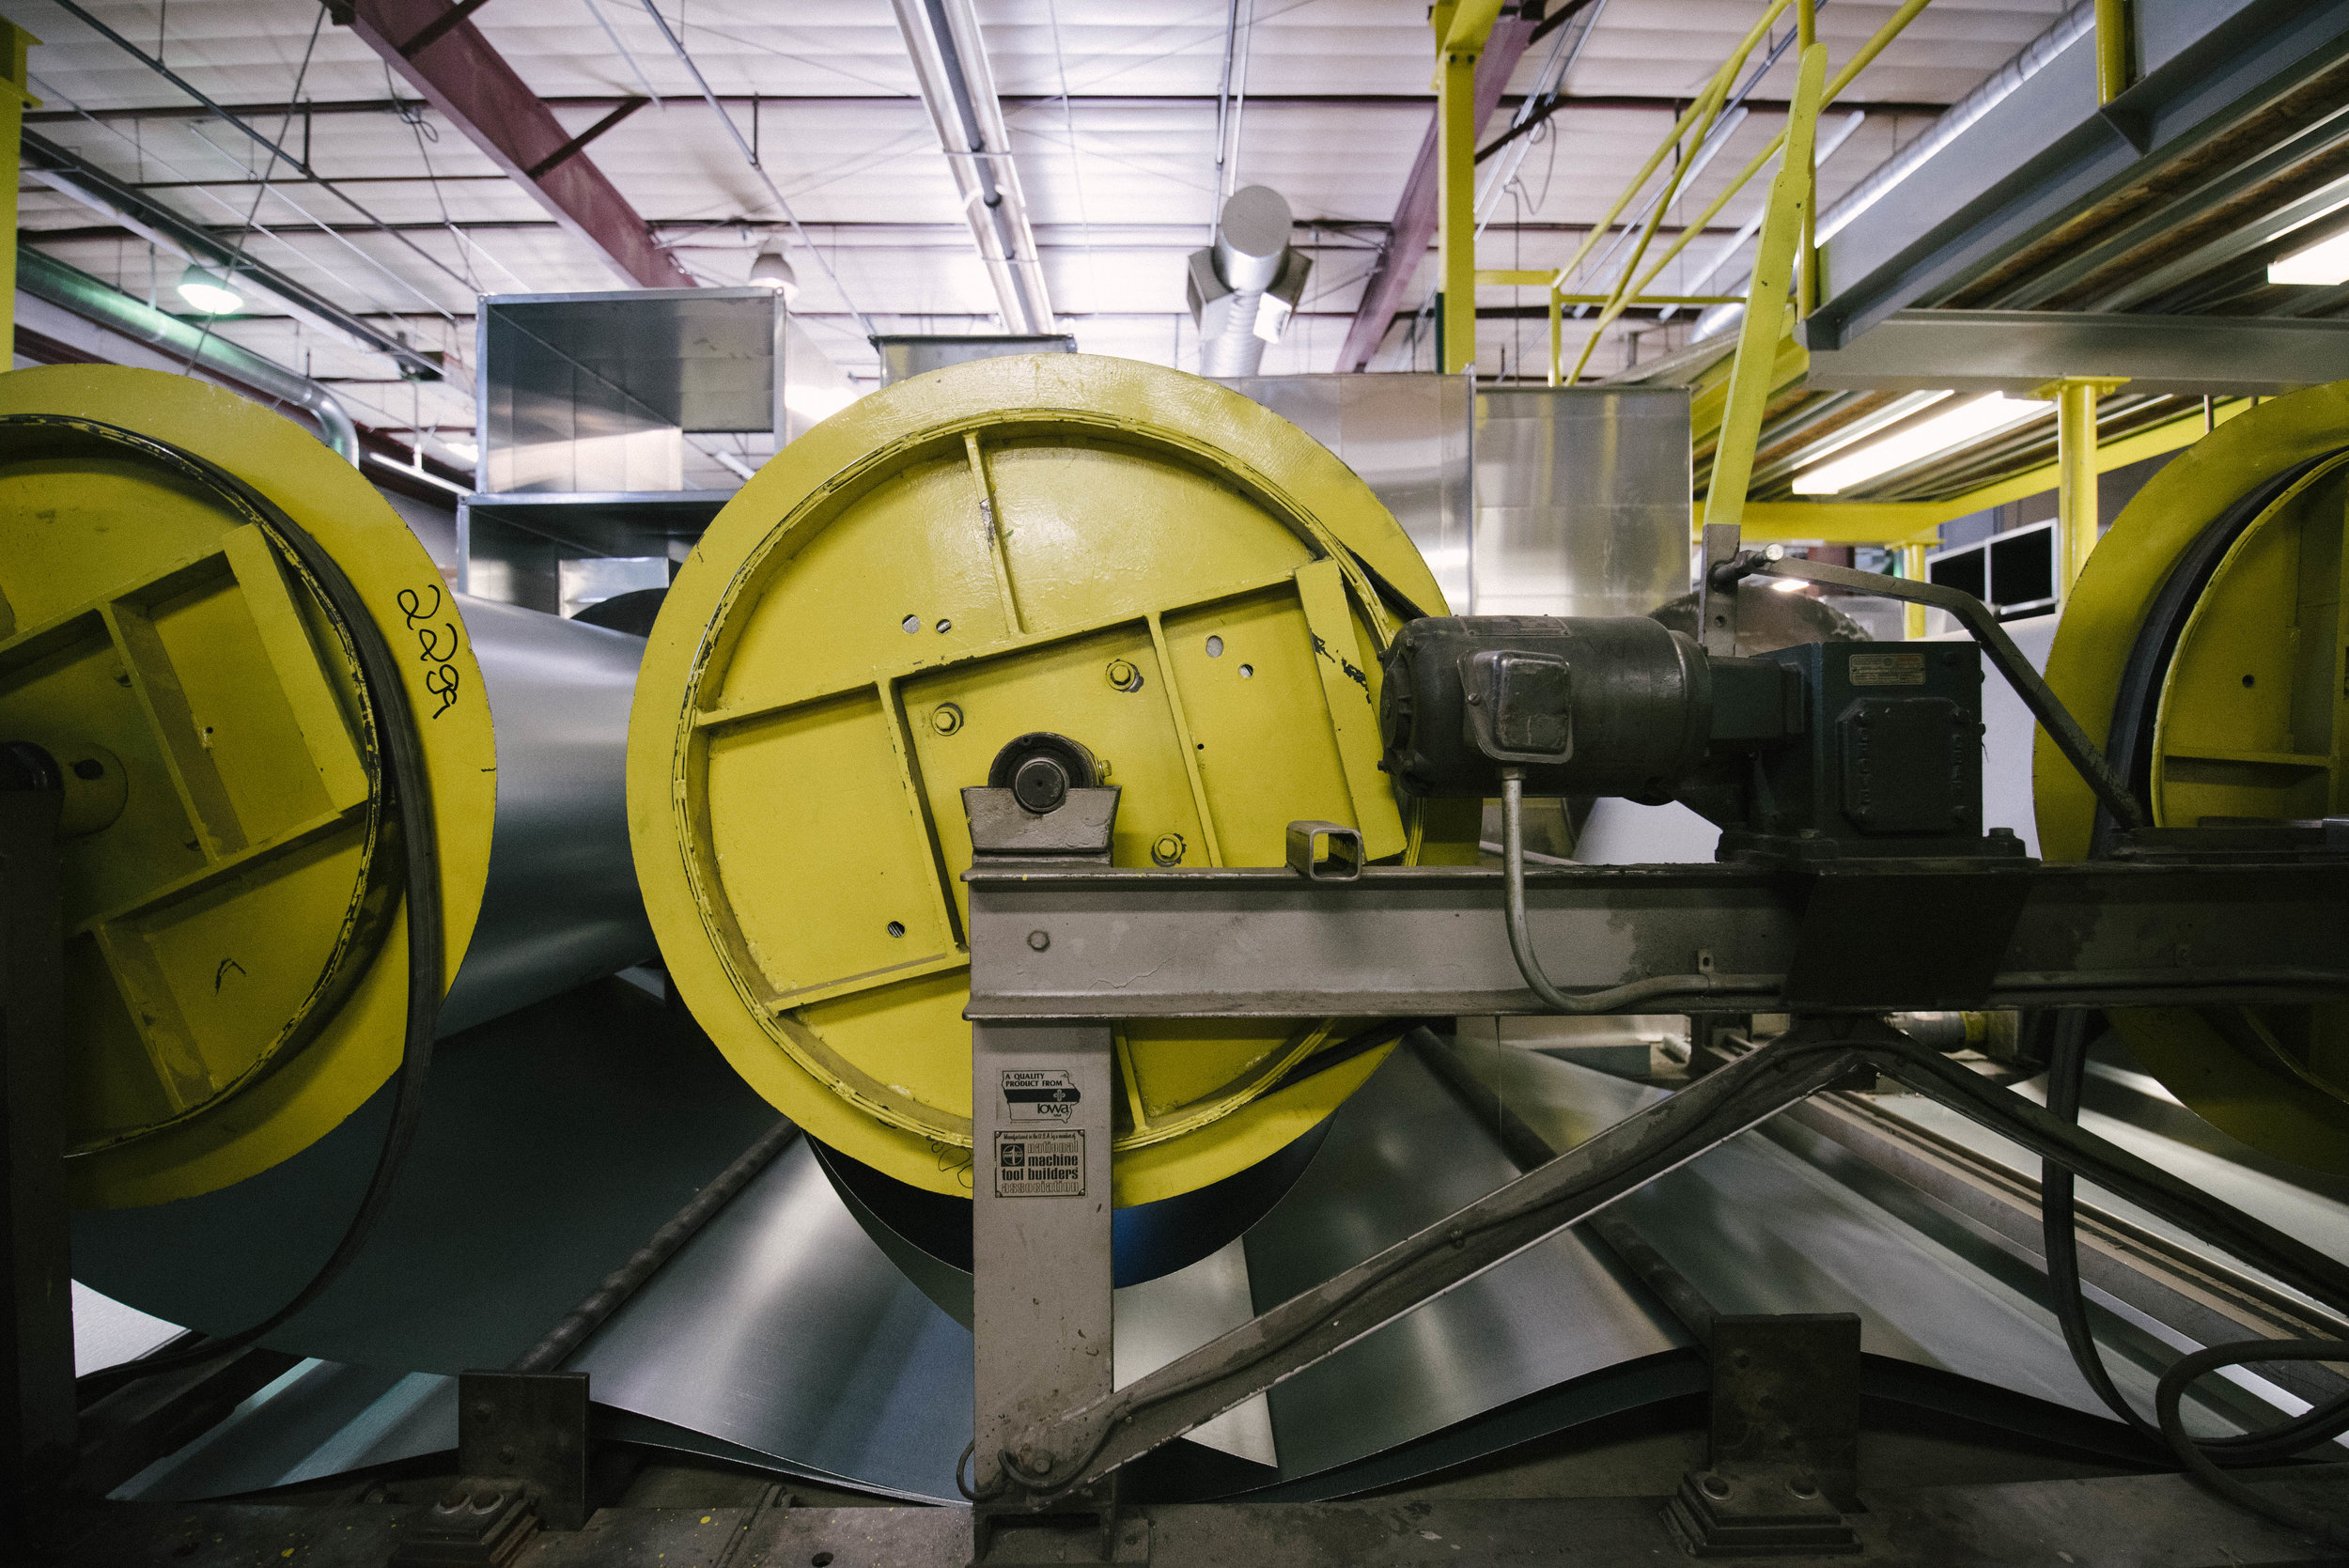 The automated machinery gives Kuck Mechanical Contractors the capability to produce custom sheet metal for industrial mechanical uses.